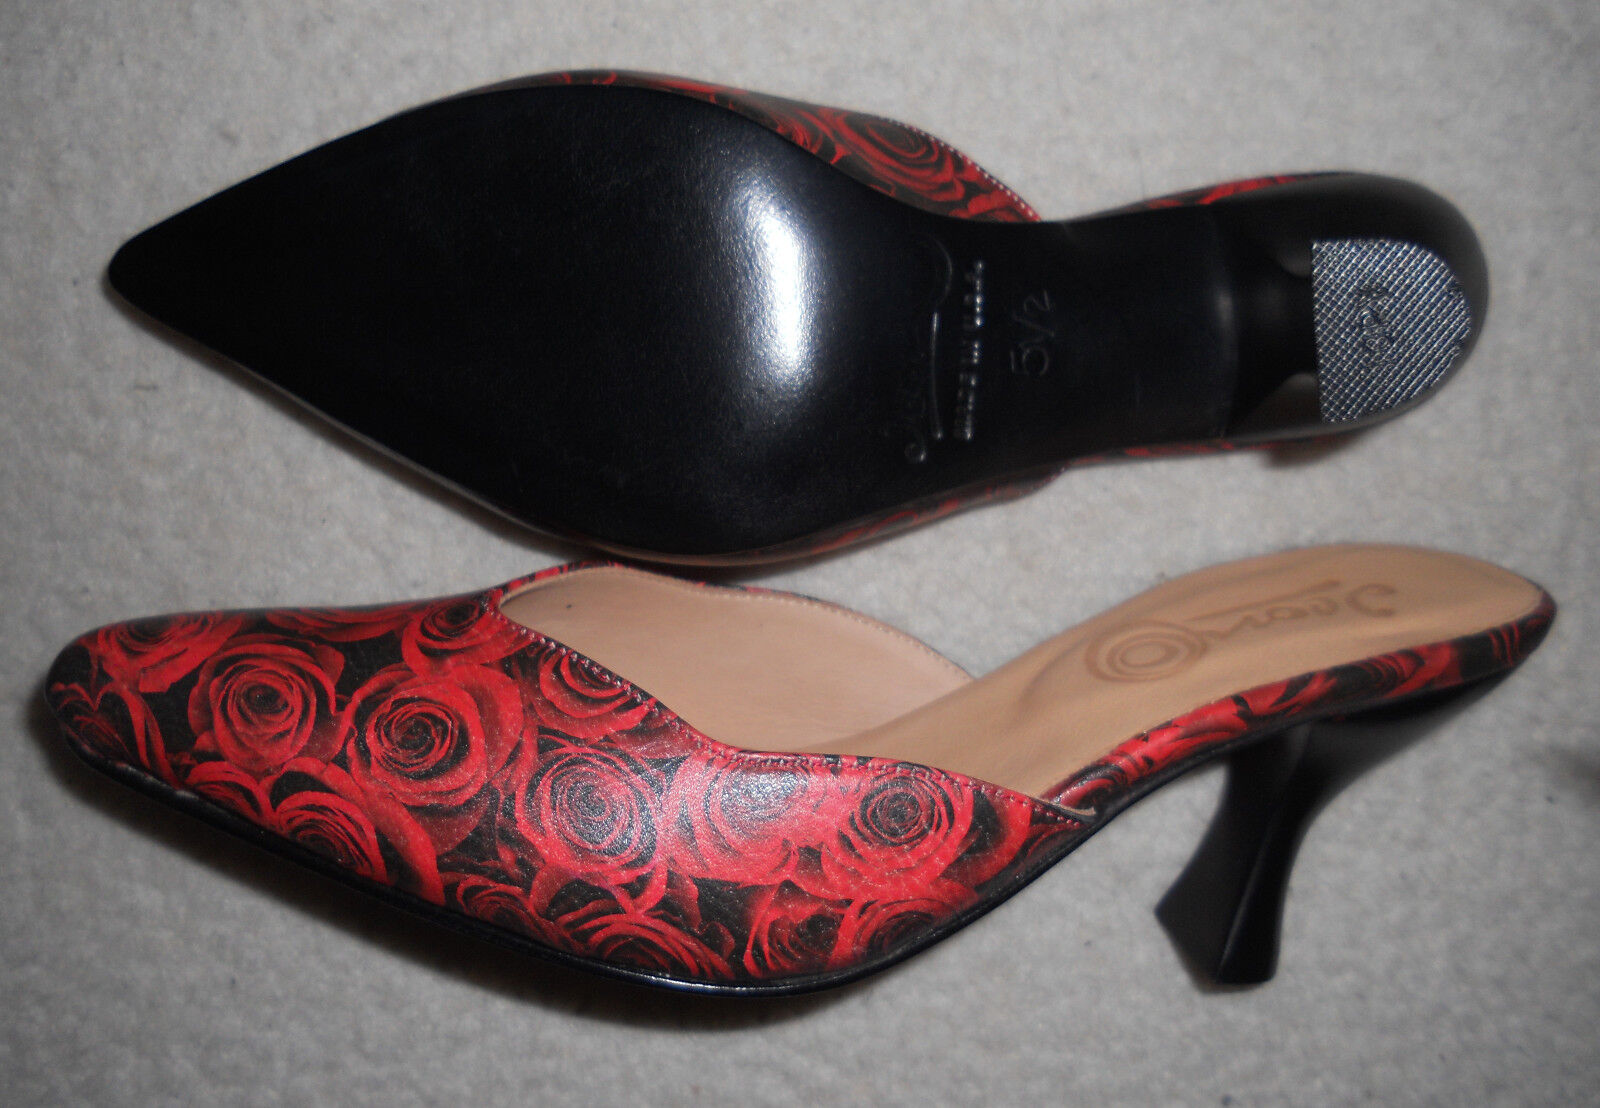 NIB Leather Icon Roses Art Shoes Roses Icon Open Back Heel Slide 5.5 M Sugar-5 $250 43f7b7